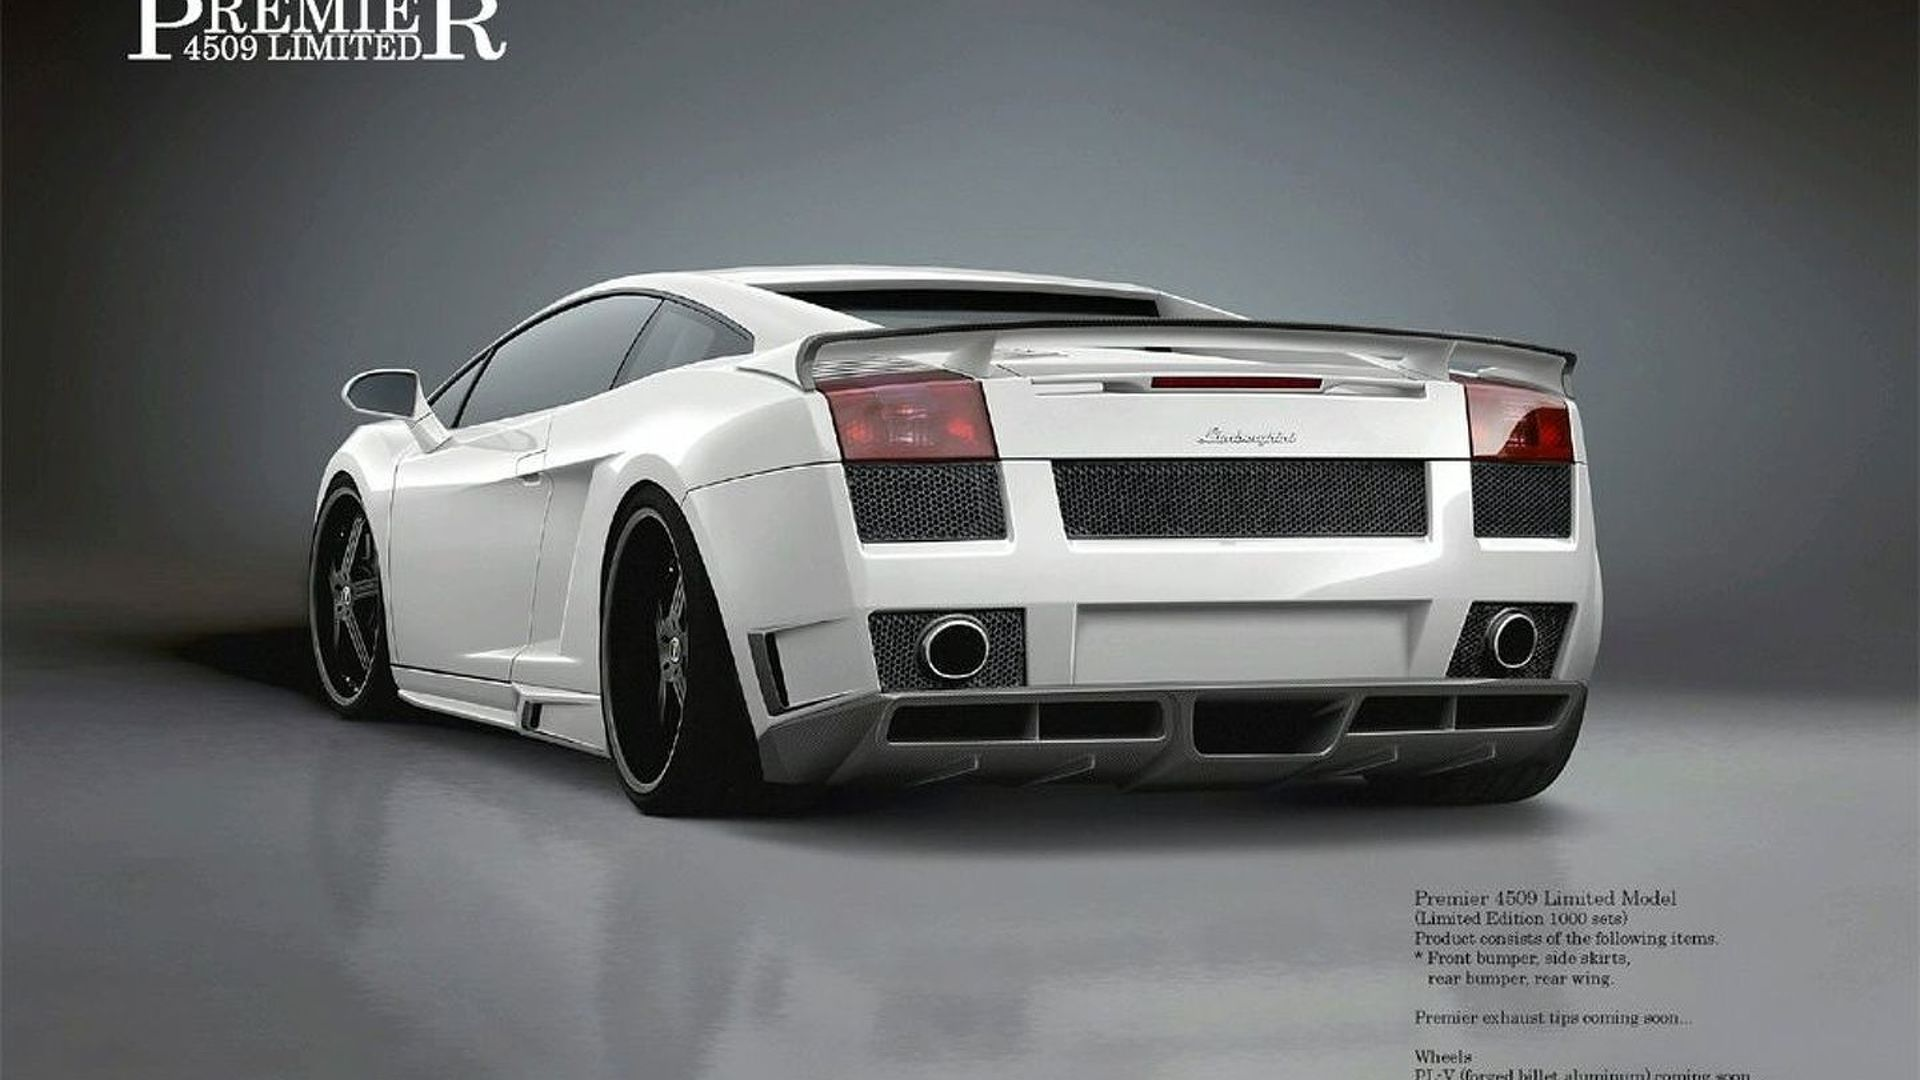 Lamborghini Gallardo Aero Kit by Premier4509 Unveiled